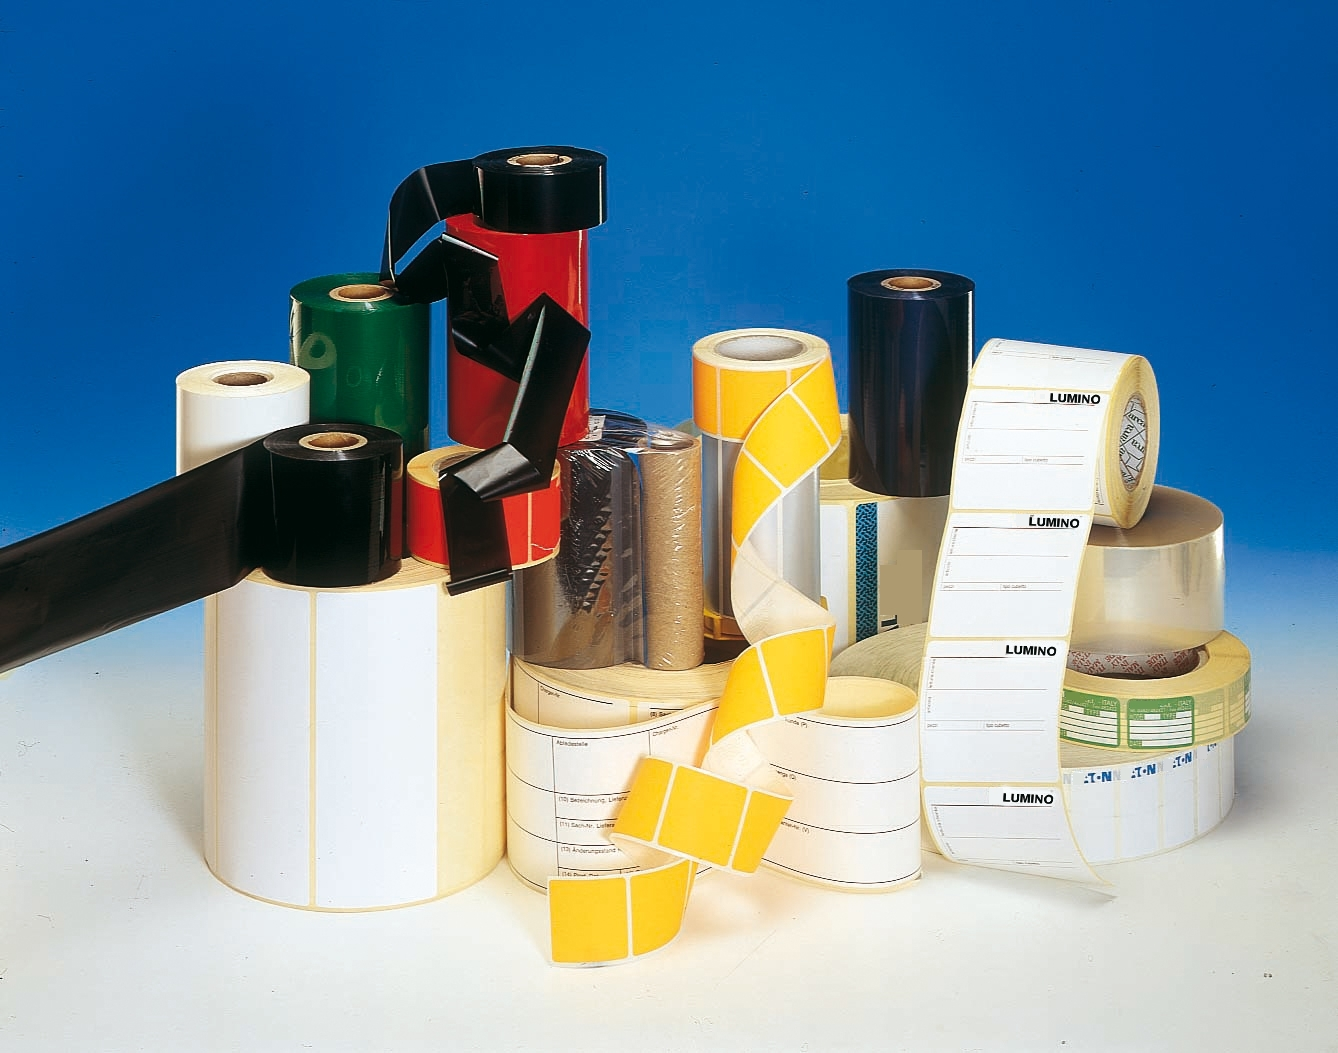 Eidos Spa offers a wide range of adhesive labels suitable for overprinting with thermal transfer technology.